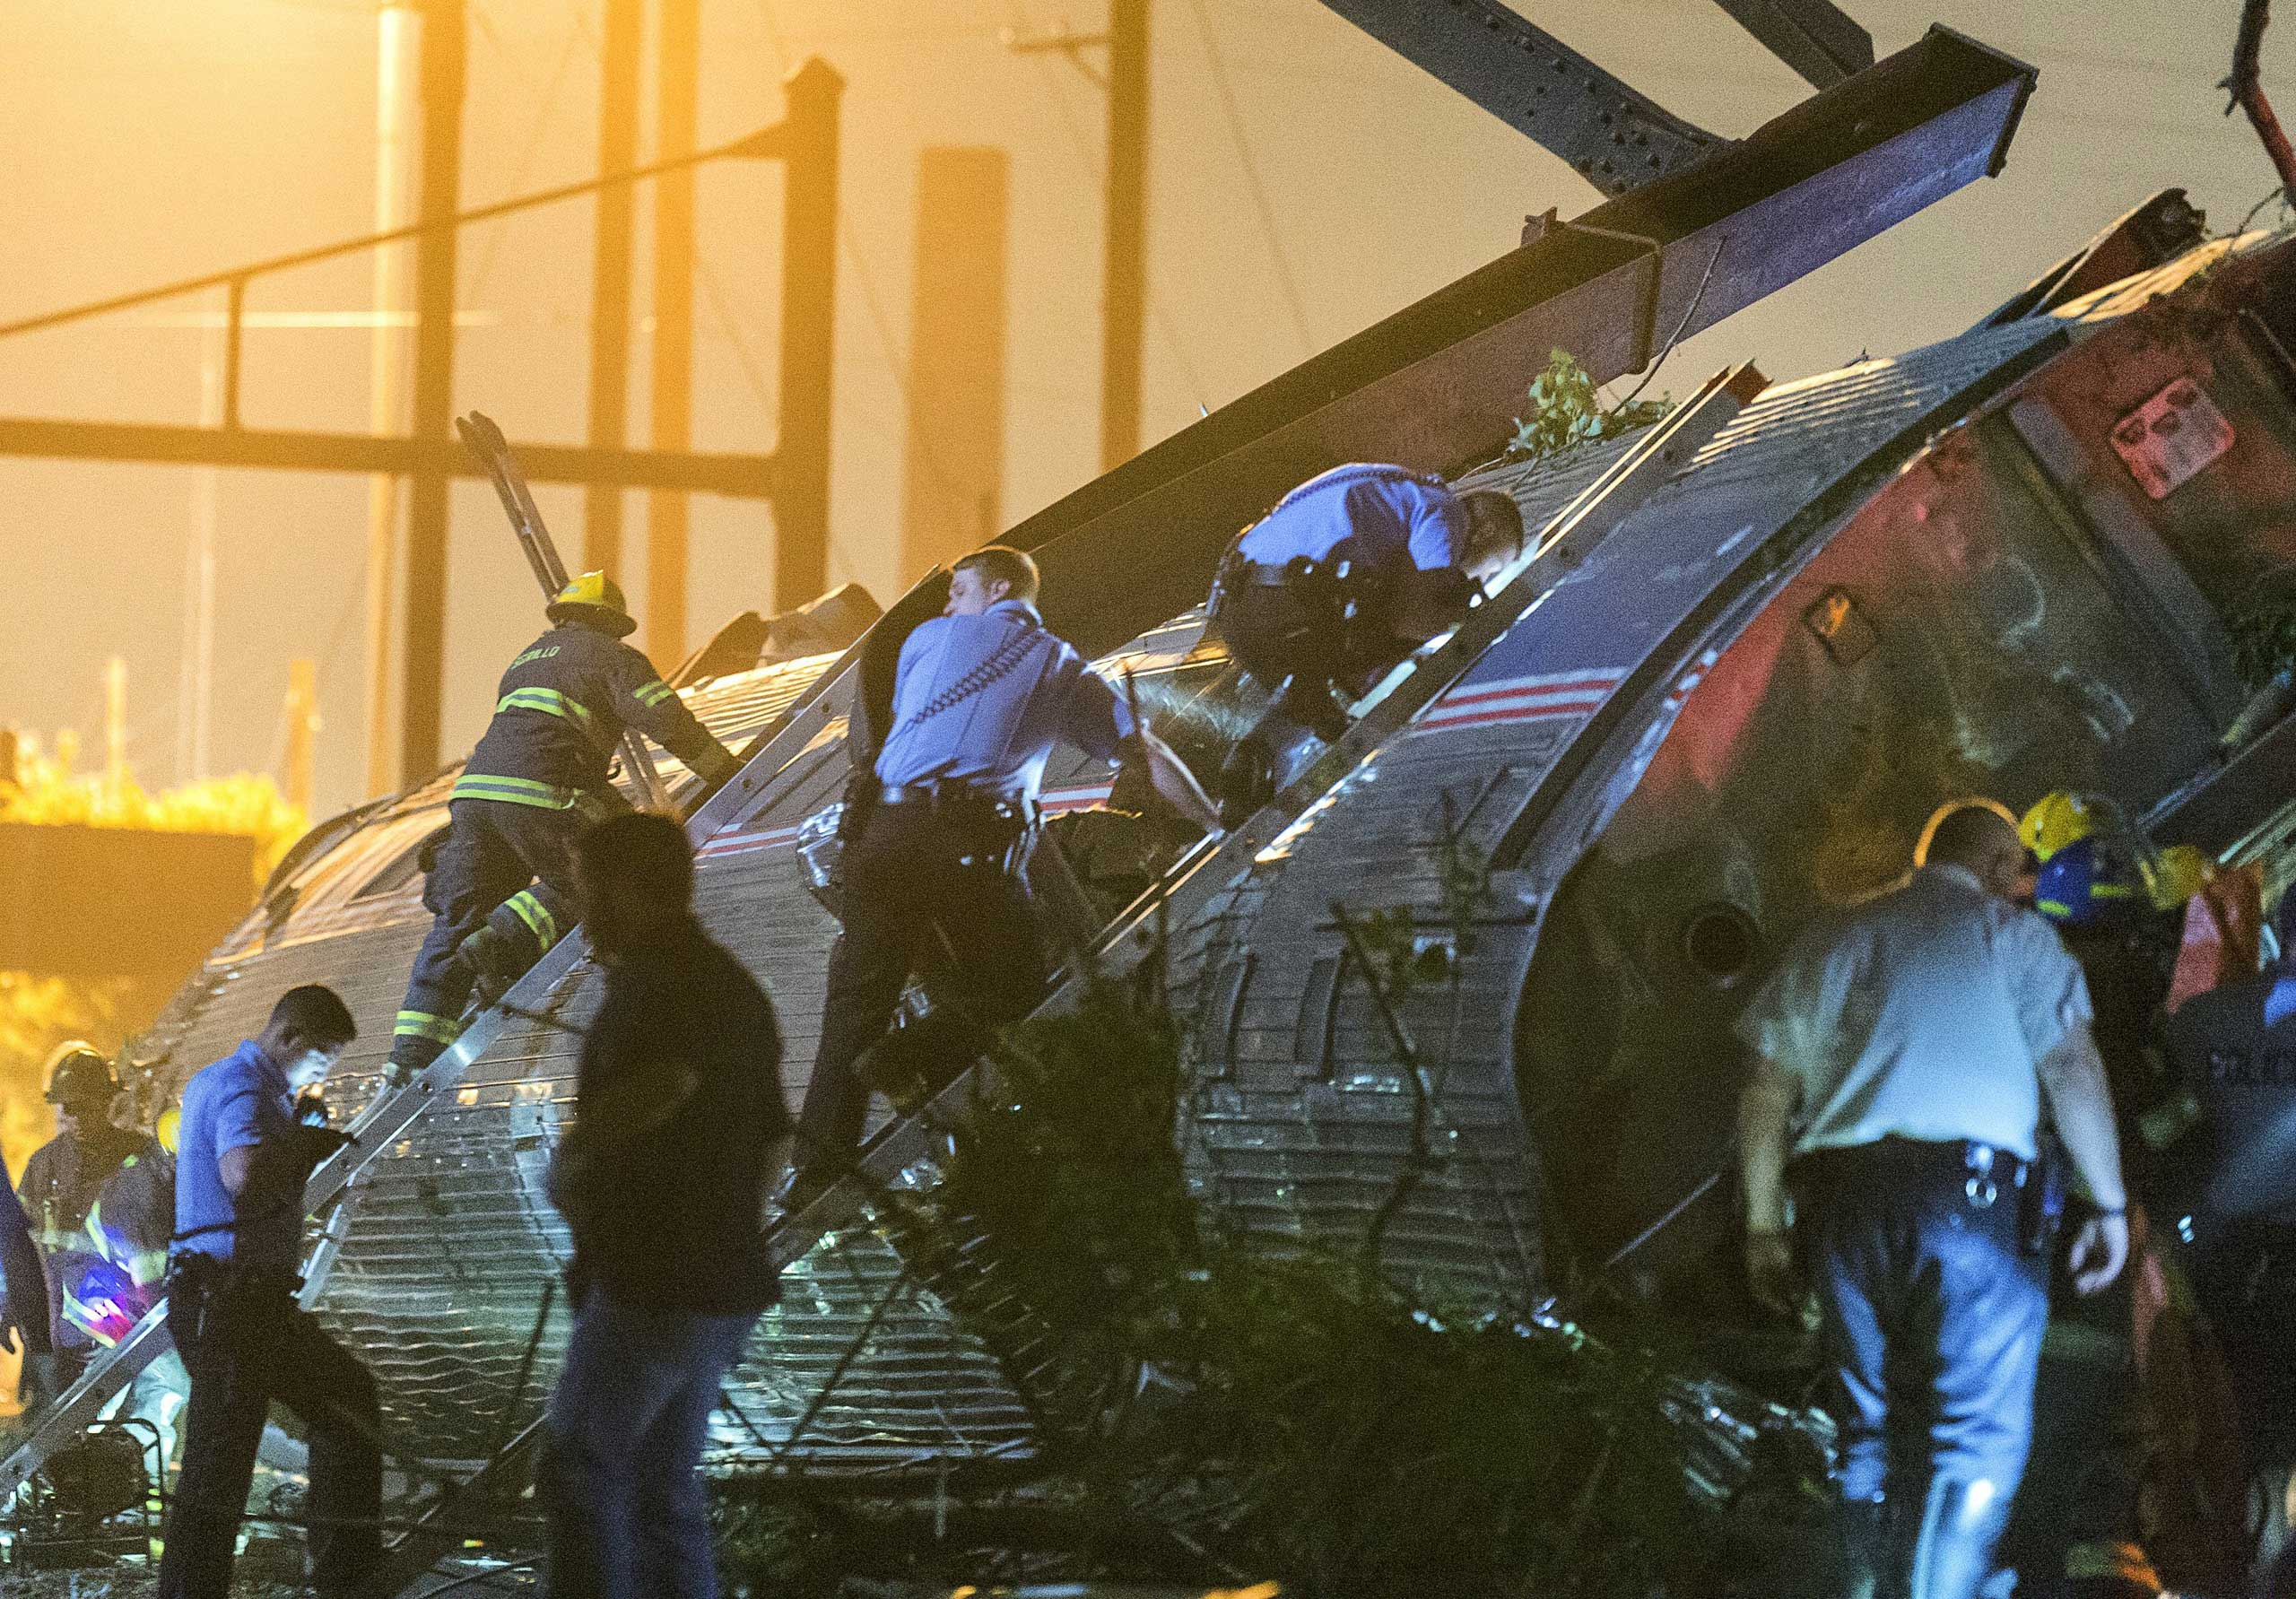 Rescue workers climb into the wreckage of a derailed Amtrak train to search for victims in Philadelphia on May 12, 2015.